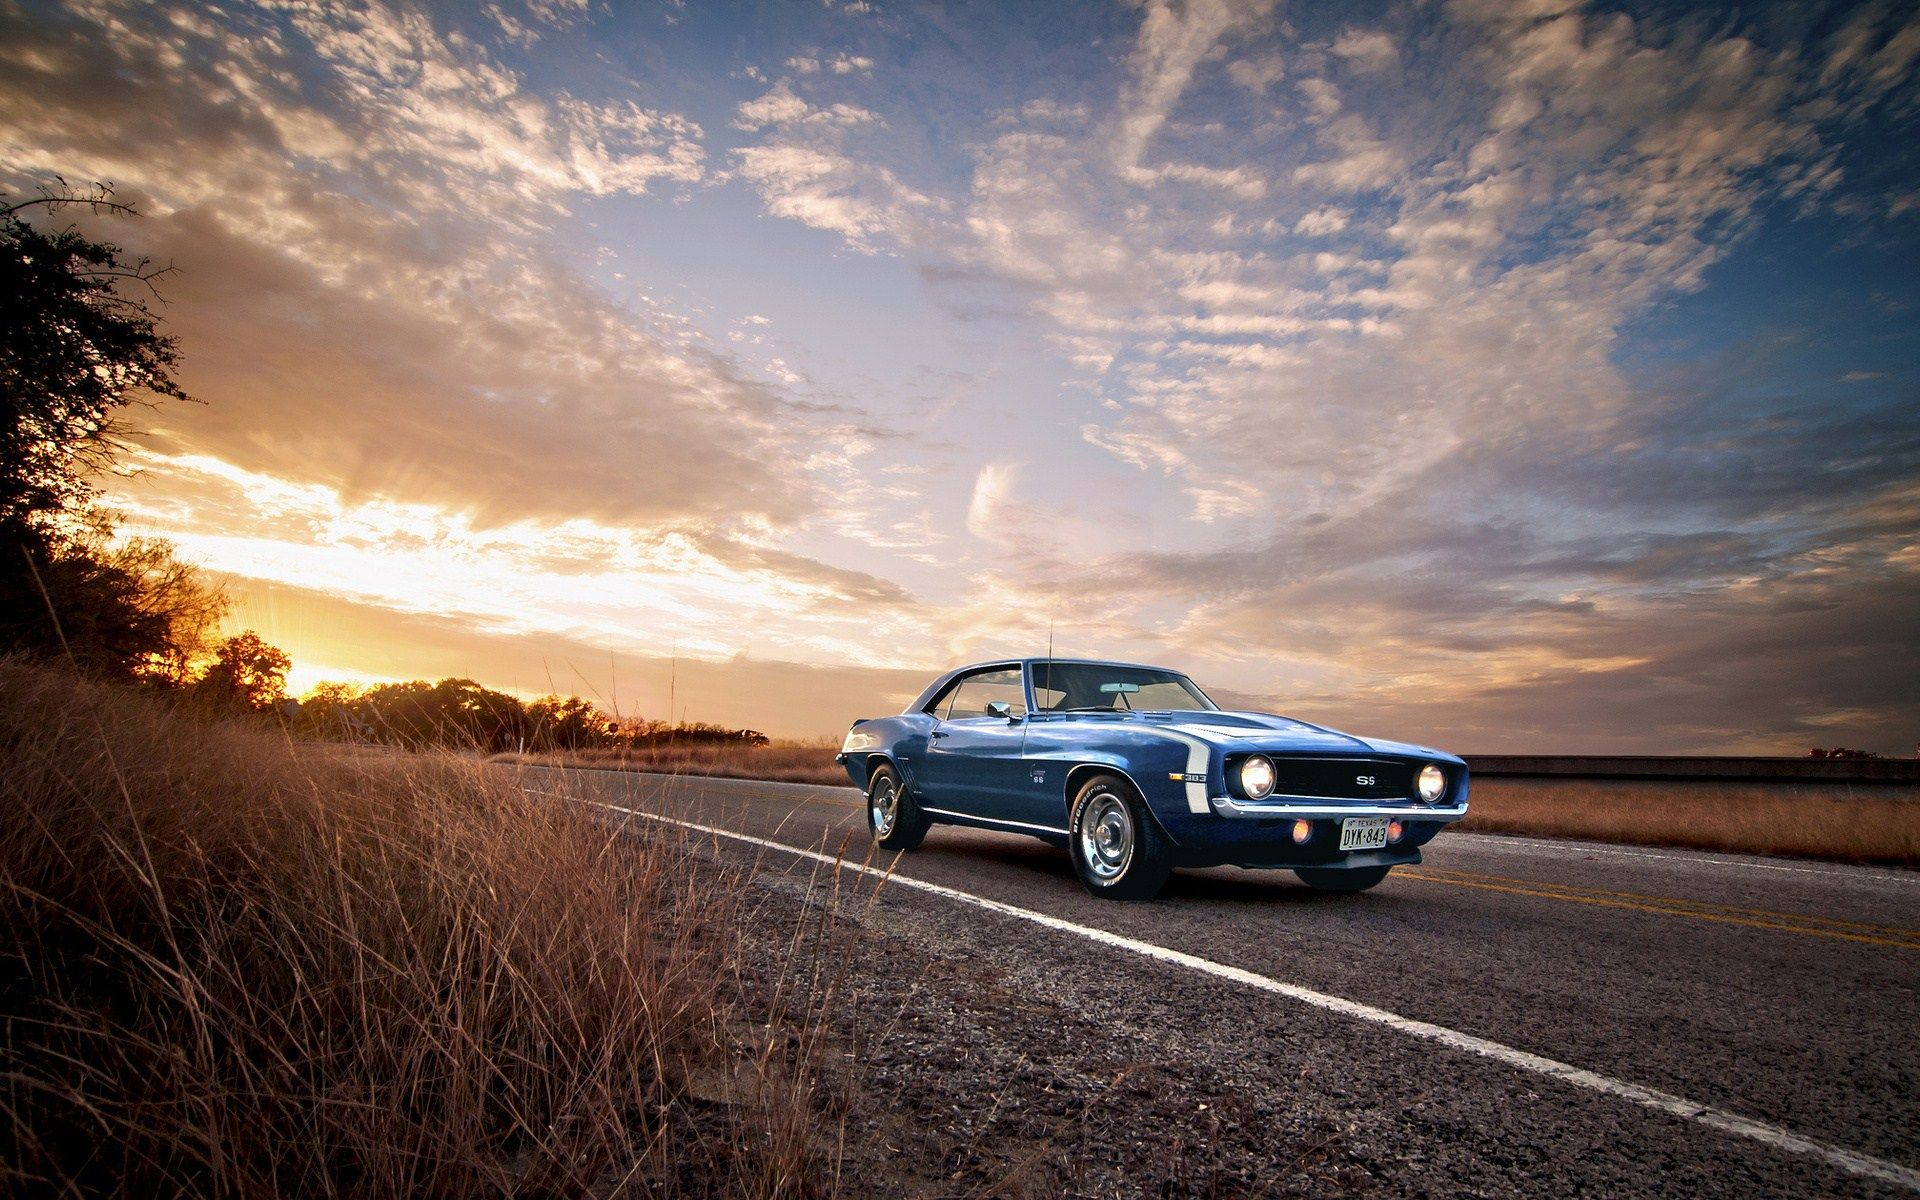 Muscle Car Wallpaper For Android Ued Cars Chevrolet Wallpaper